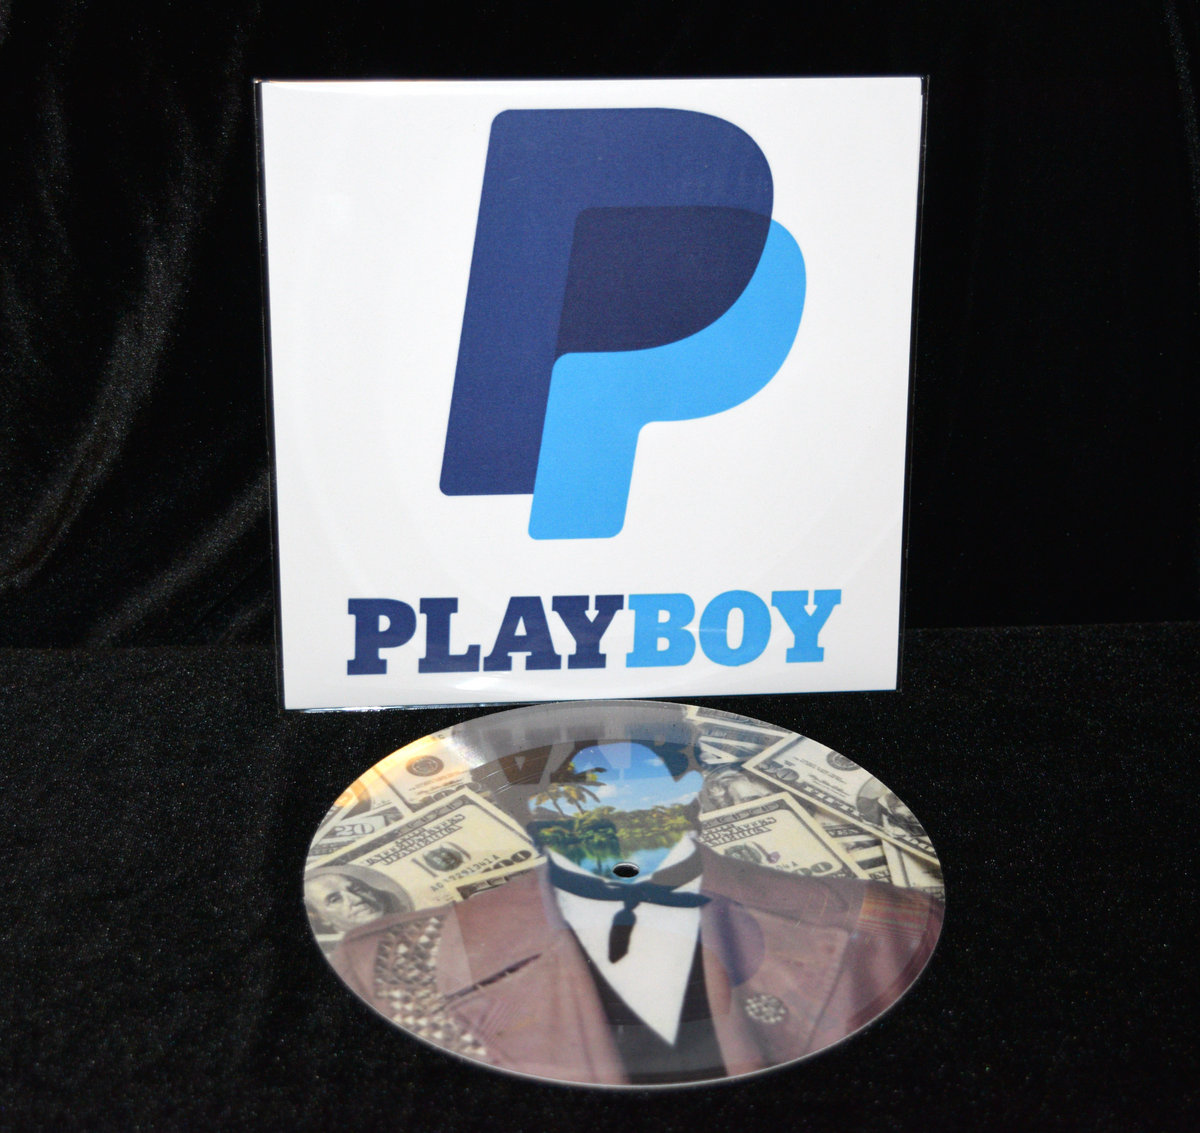 Limited edition 7 paypal playboy picture disc lathe ft 猫 シ corp